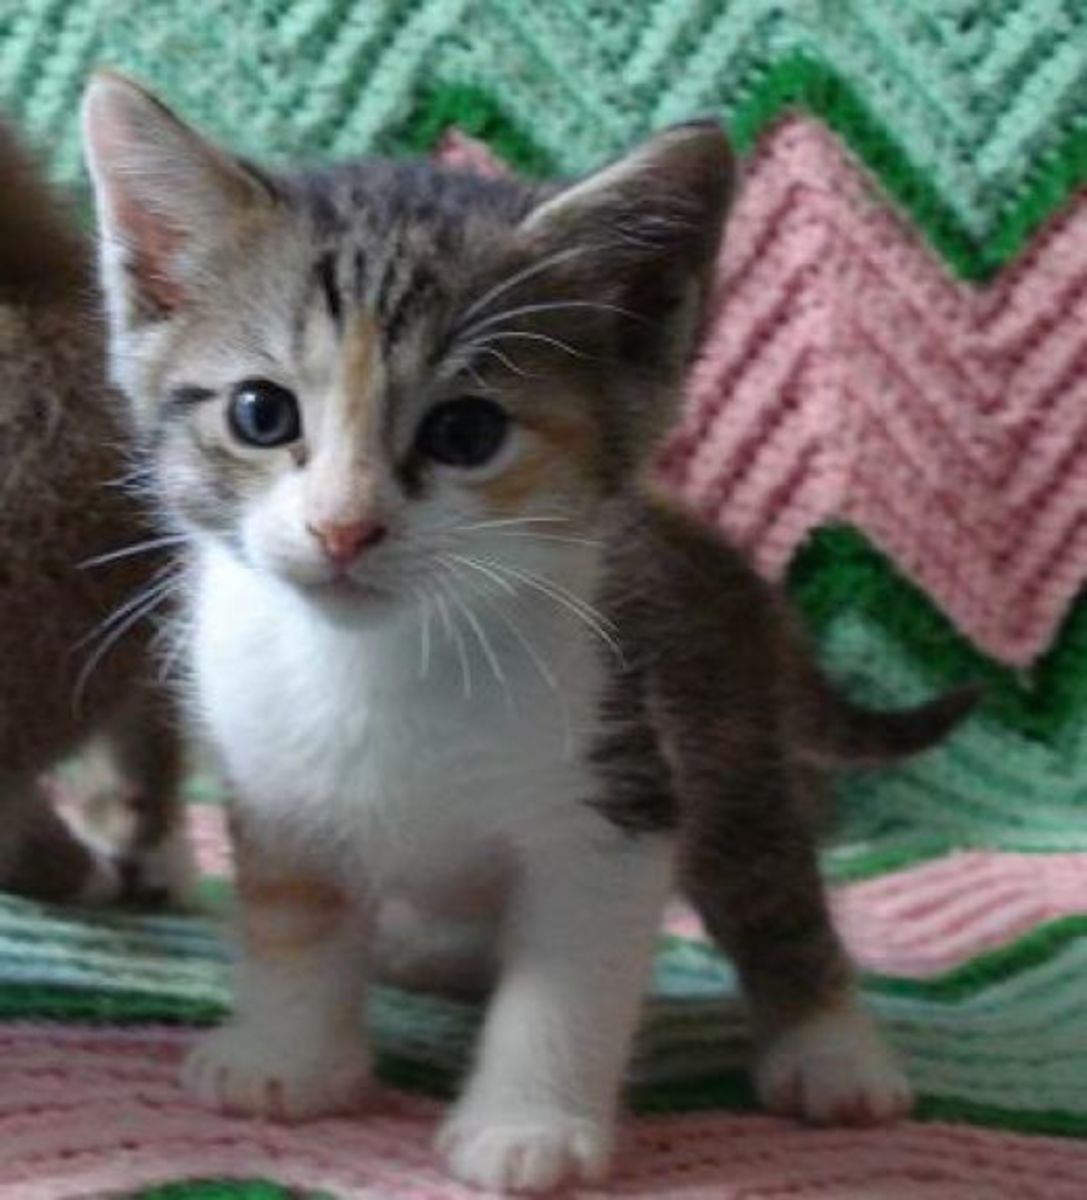 Bitch Kitty as a kitten - wasn't she just precious?